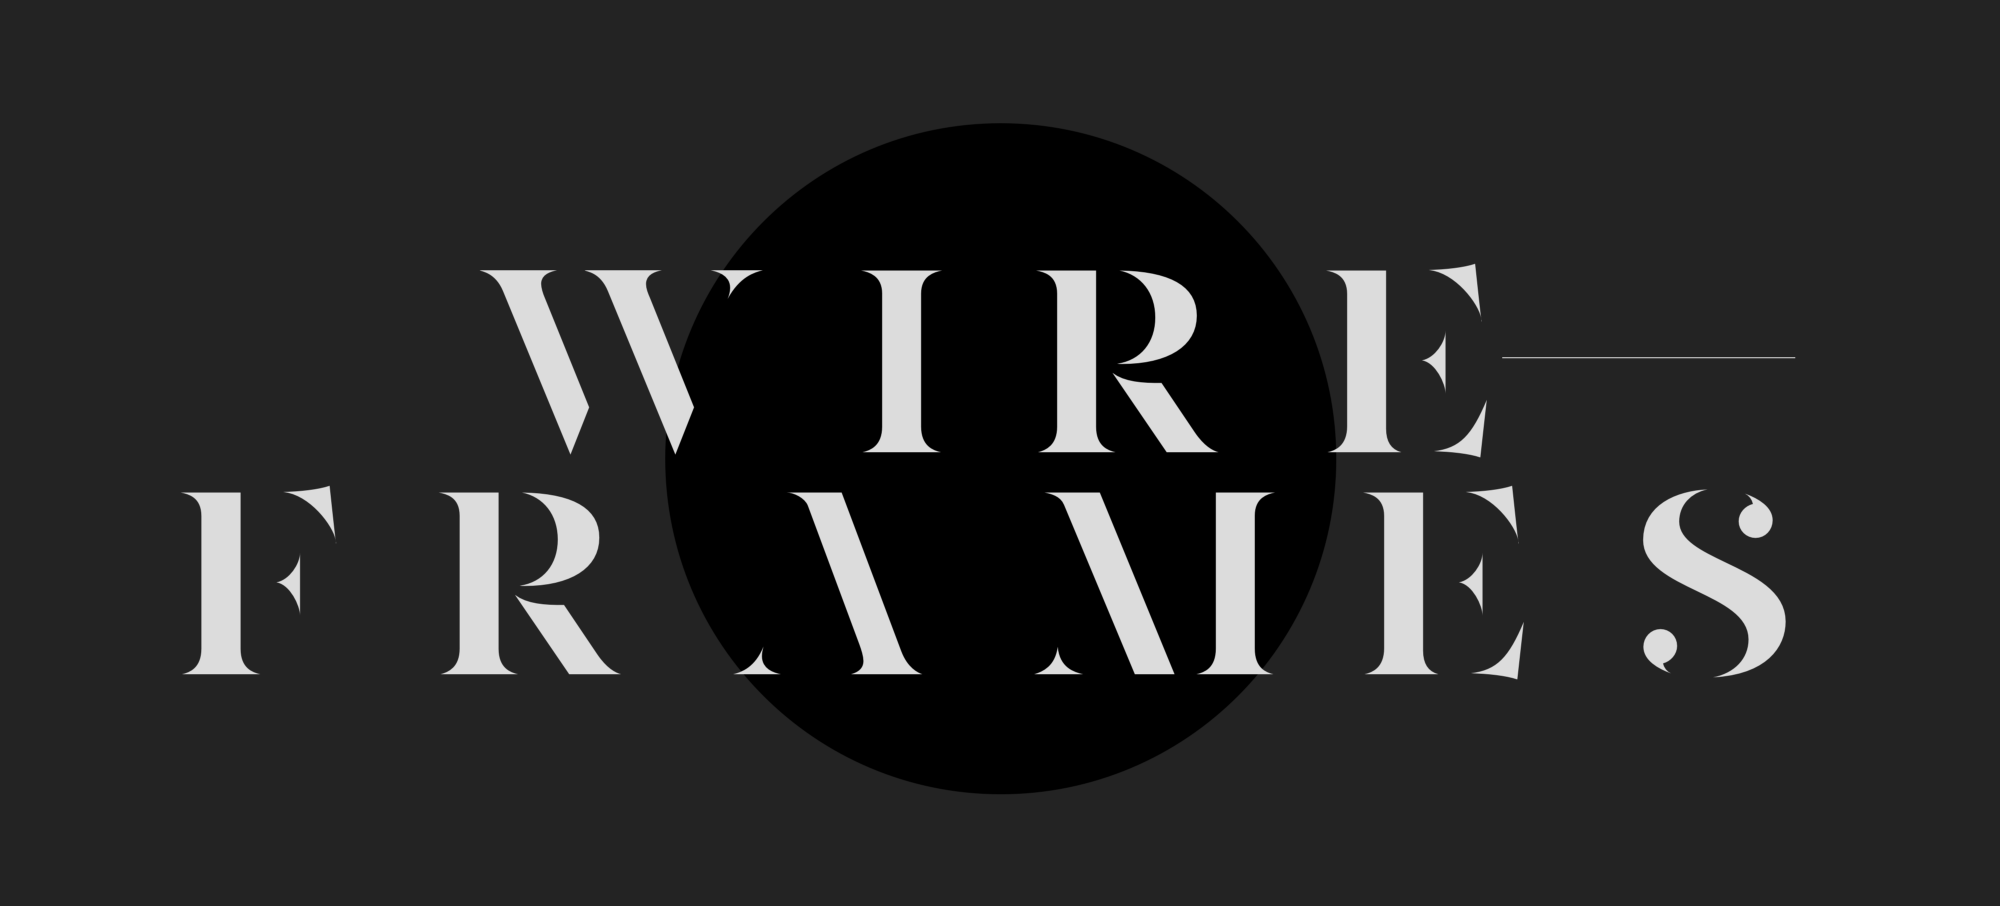 Wireframes are dead—why I haven't used wires in over a year